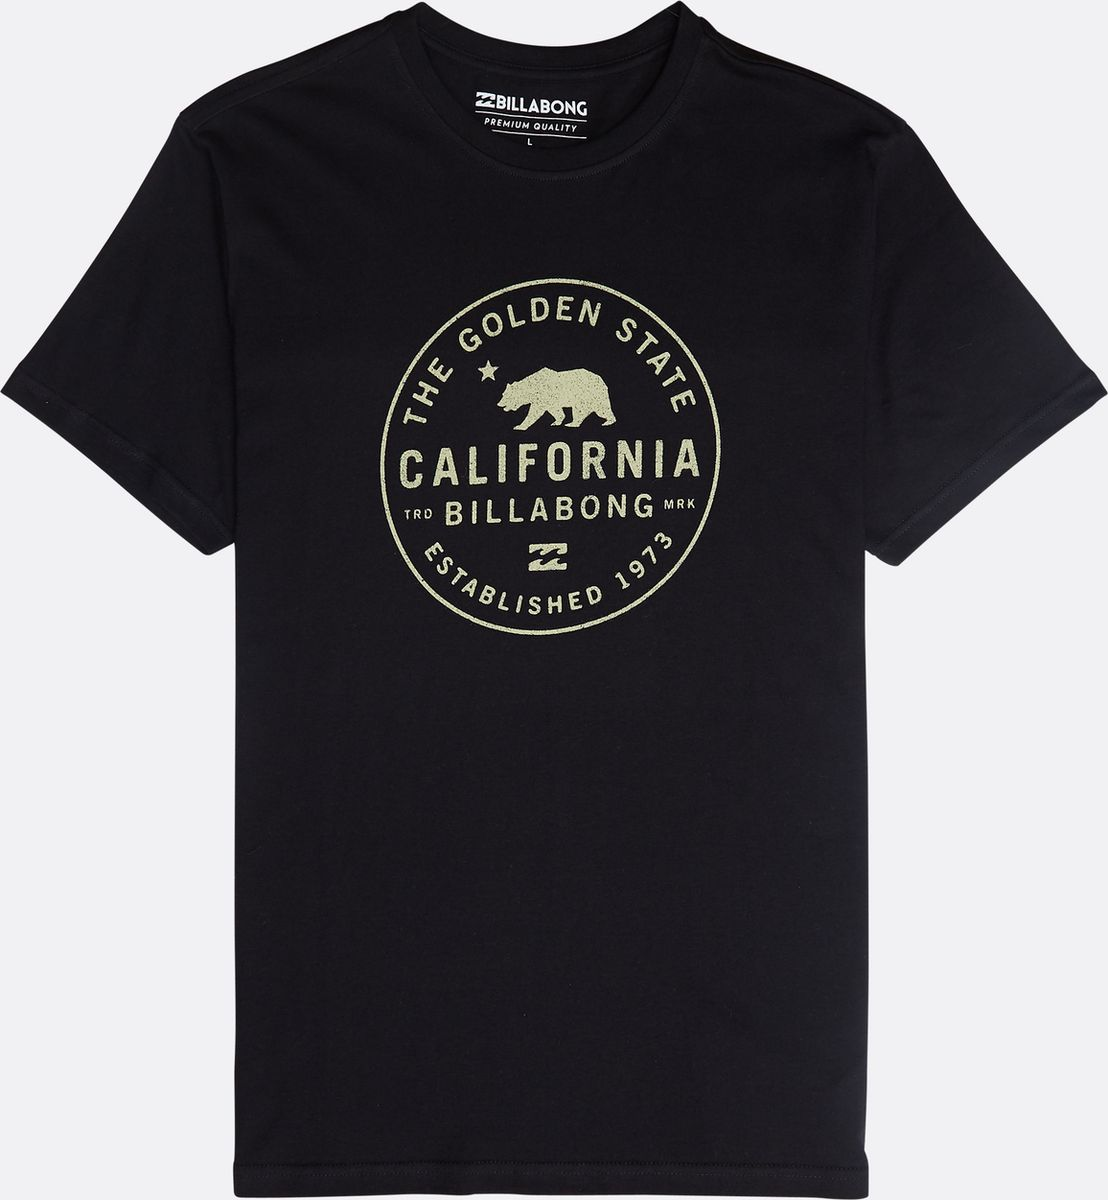 цена на Футболка Billabong Golden State Te Ss